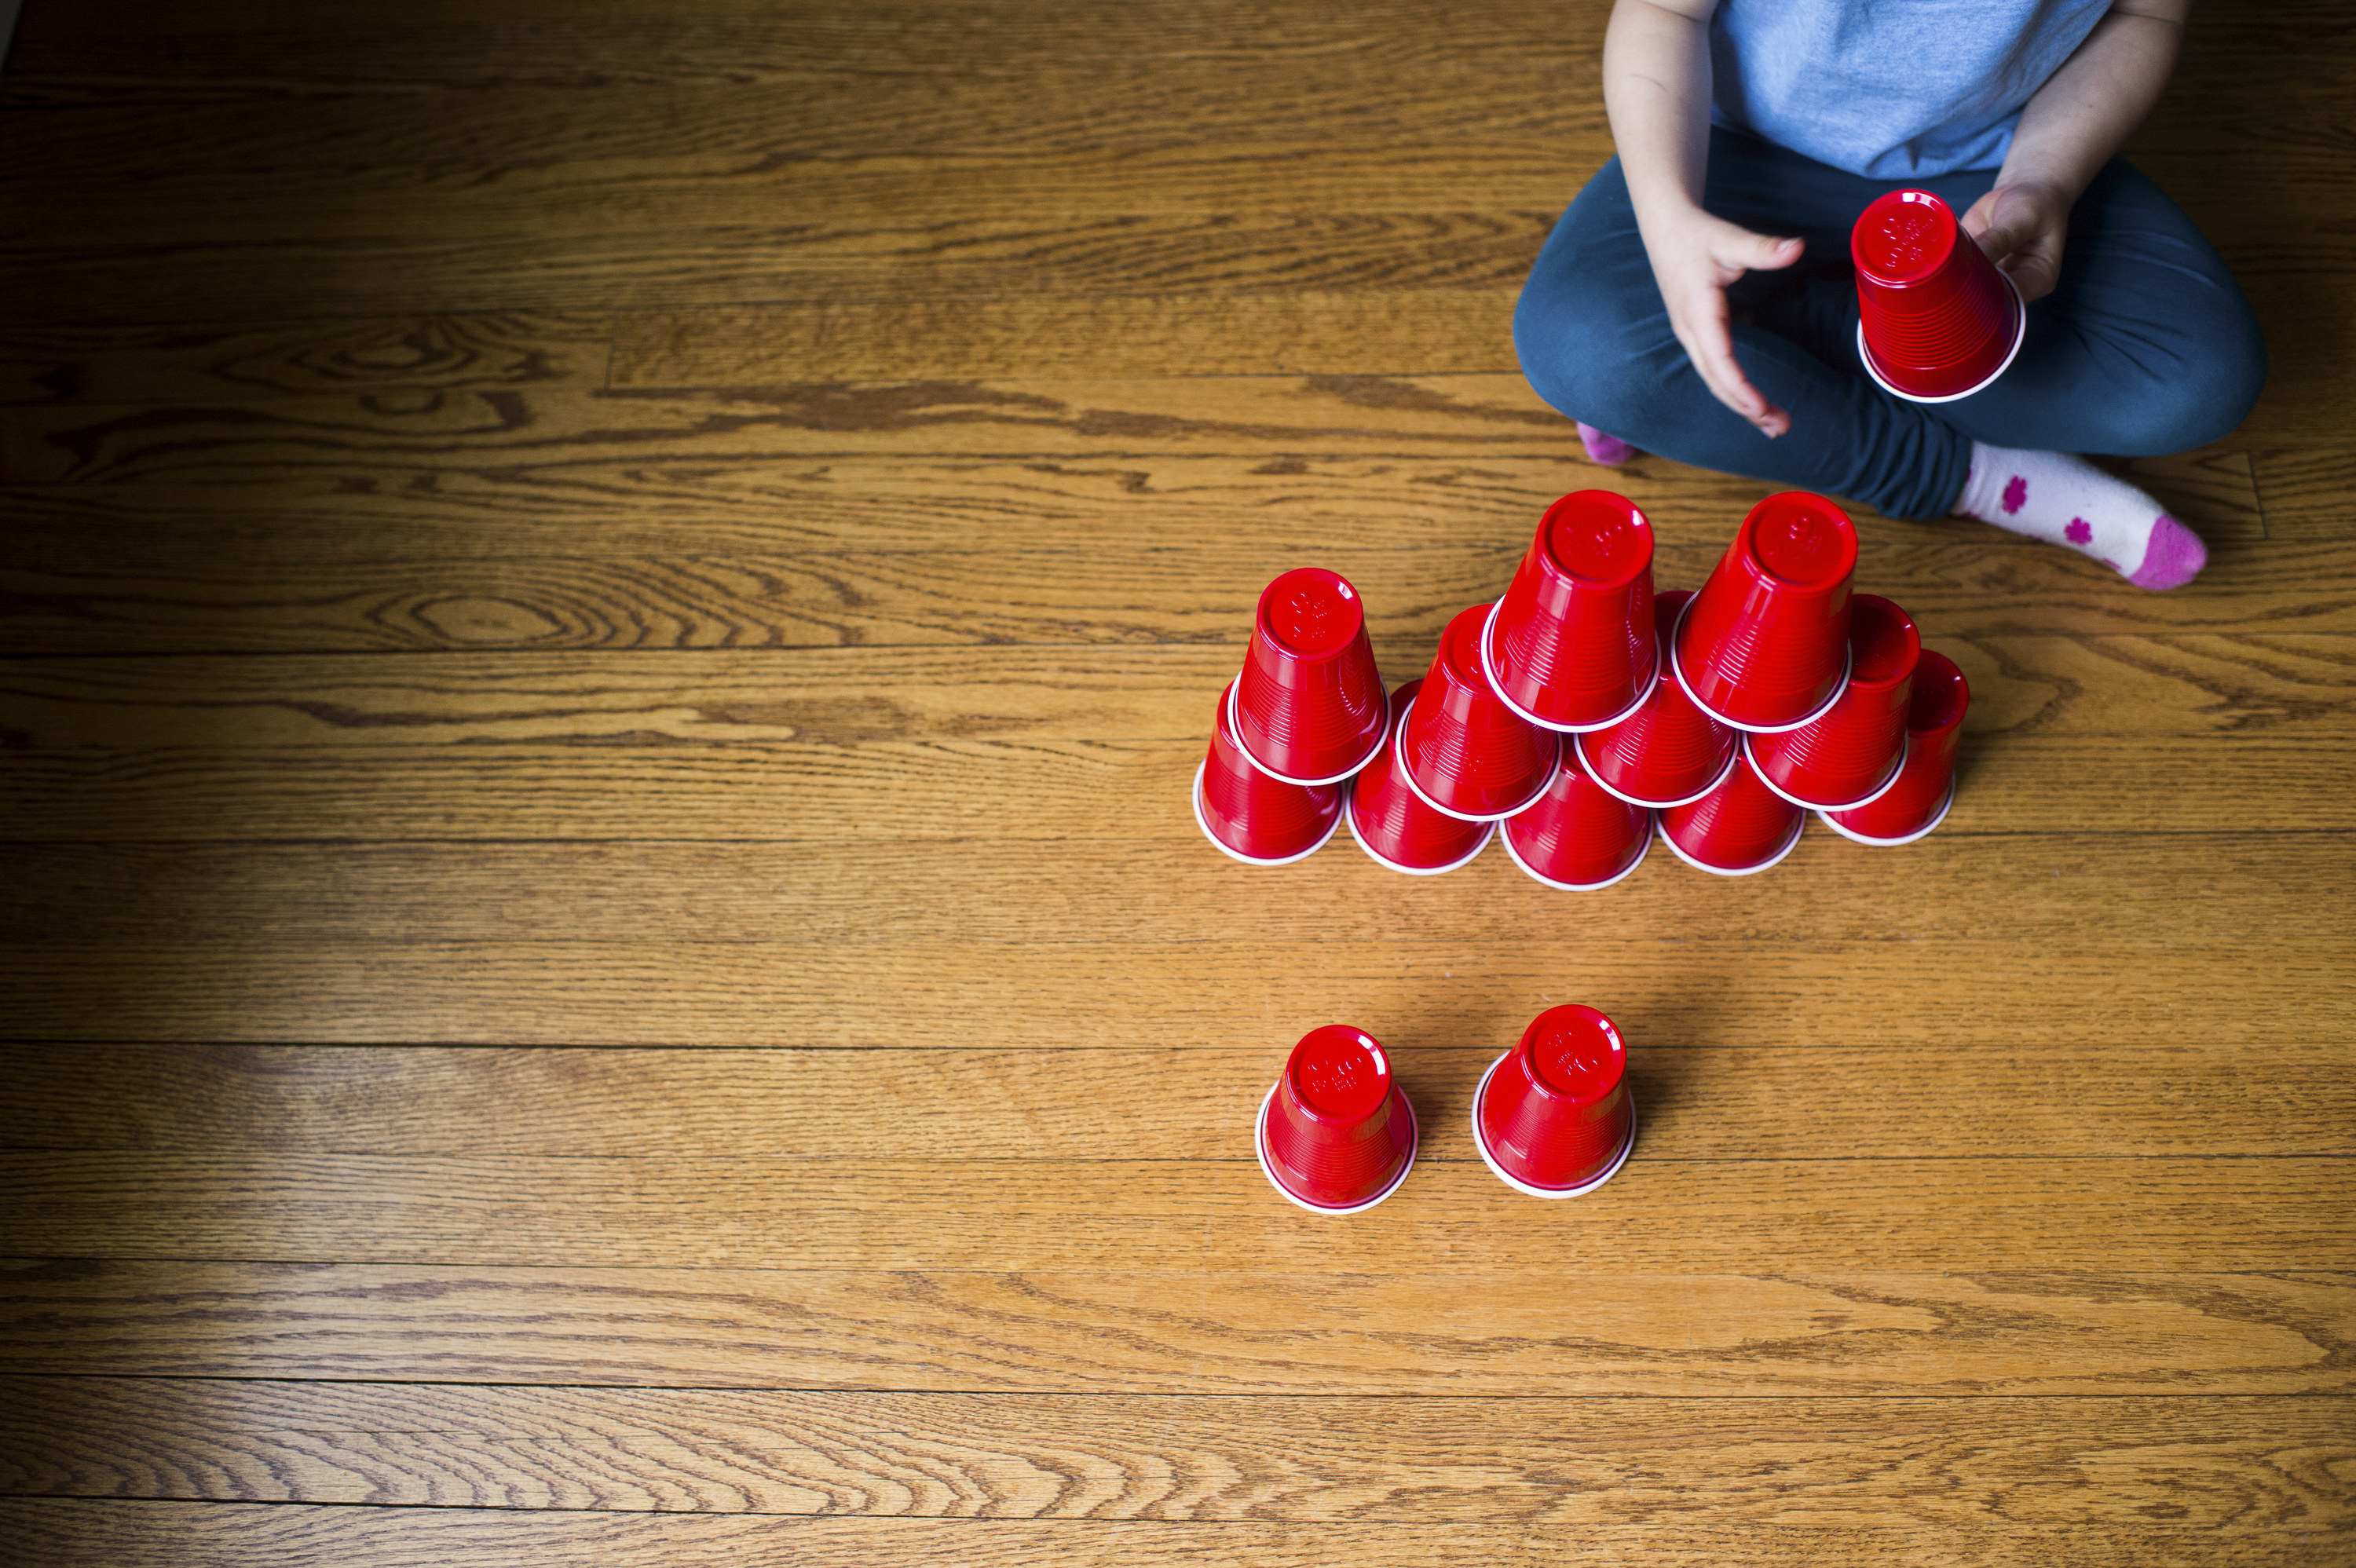 Child stacks plastic cups into a pyramid shape on a wooden floor.